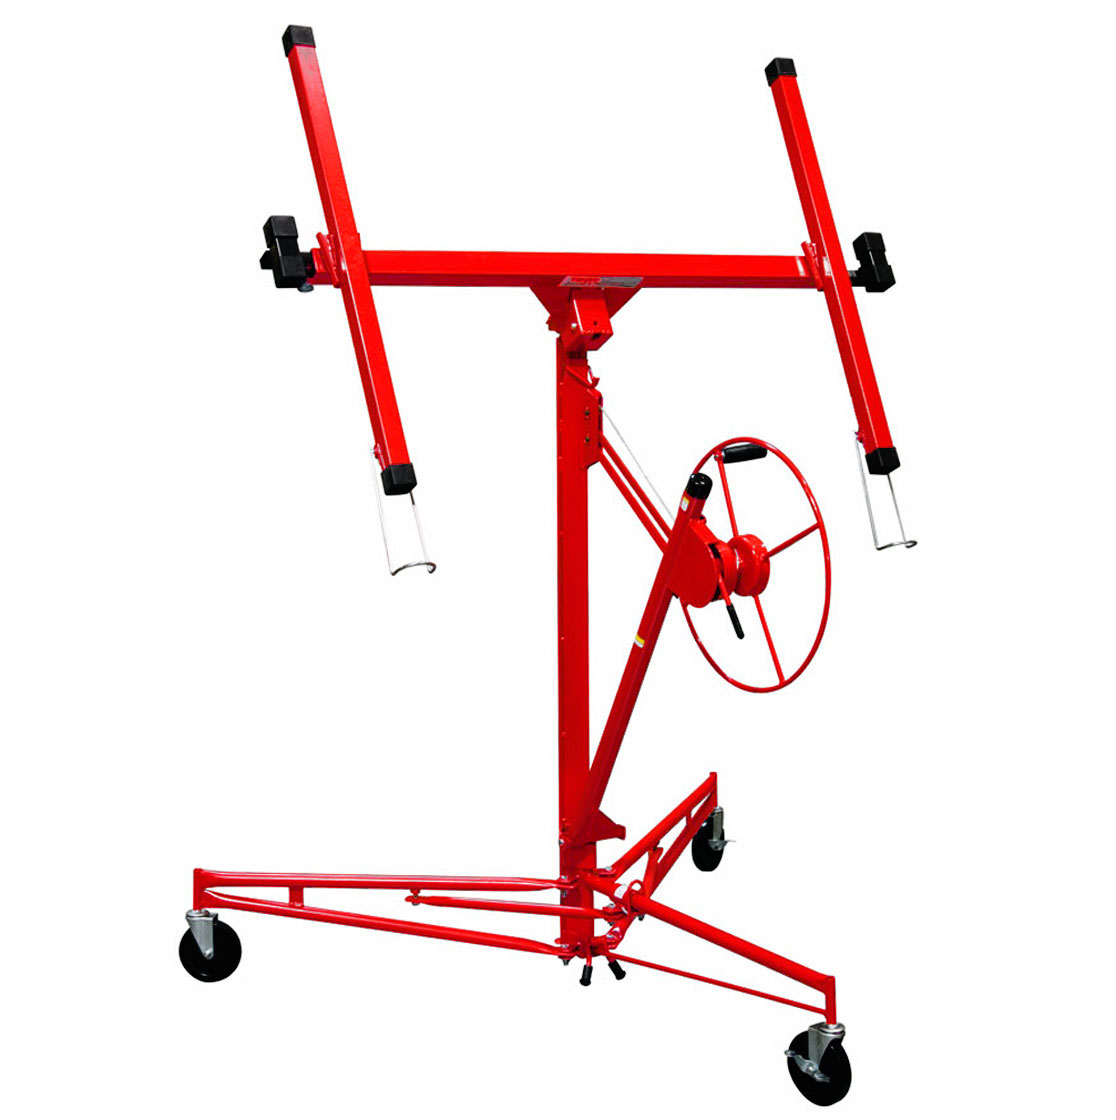 TROY Professional Drywall Panel Lift